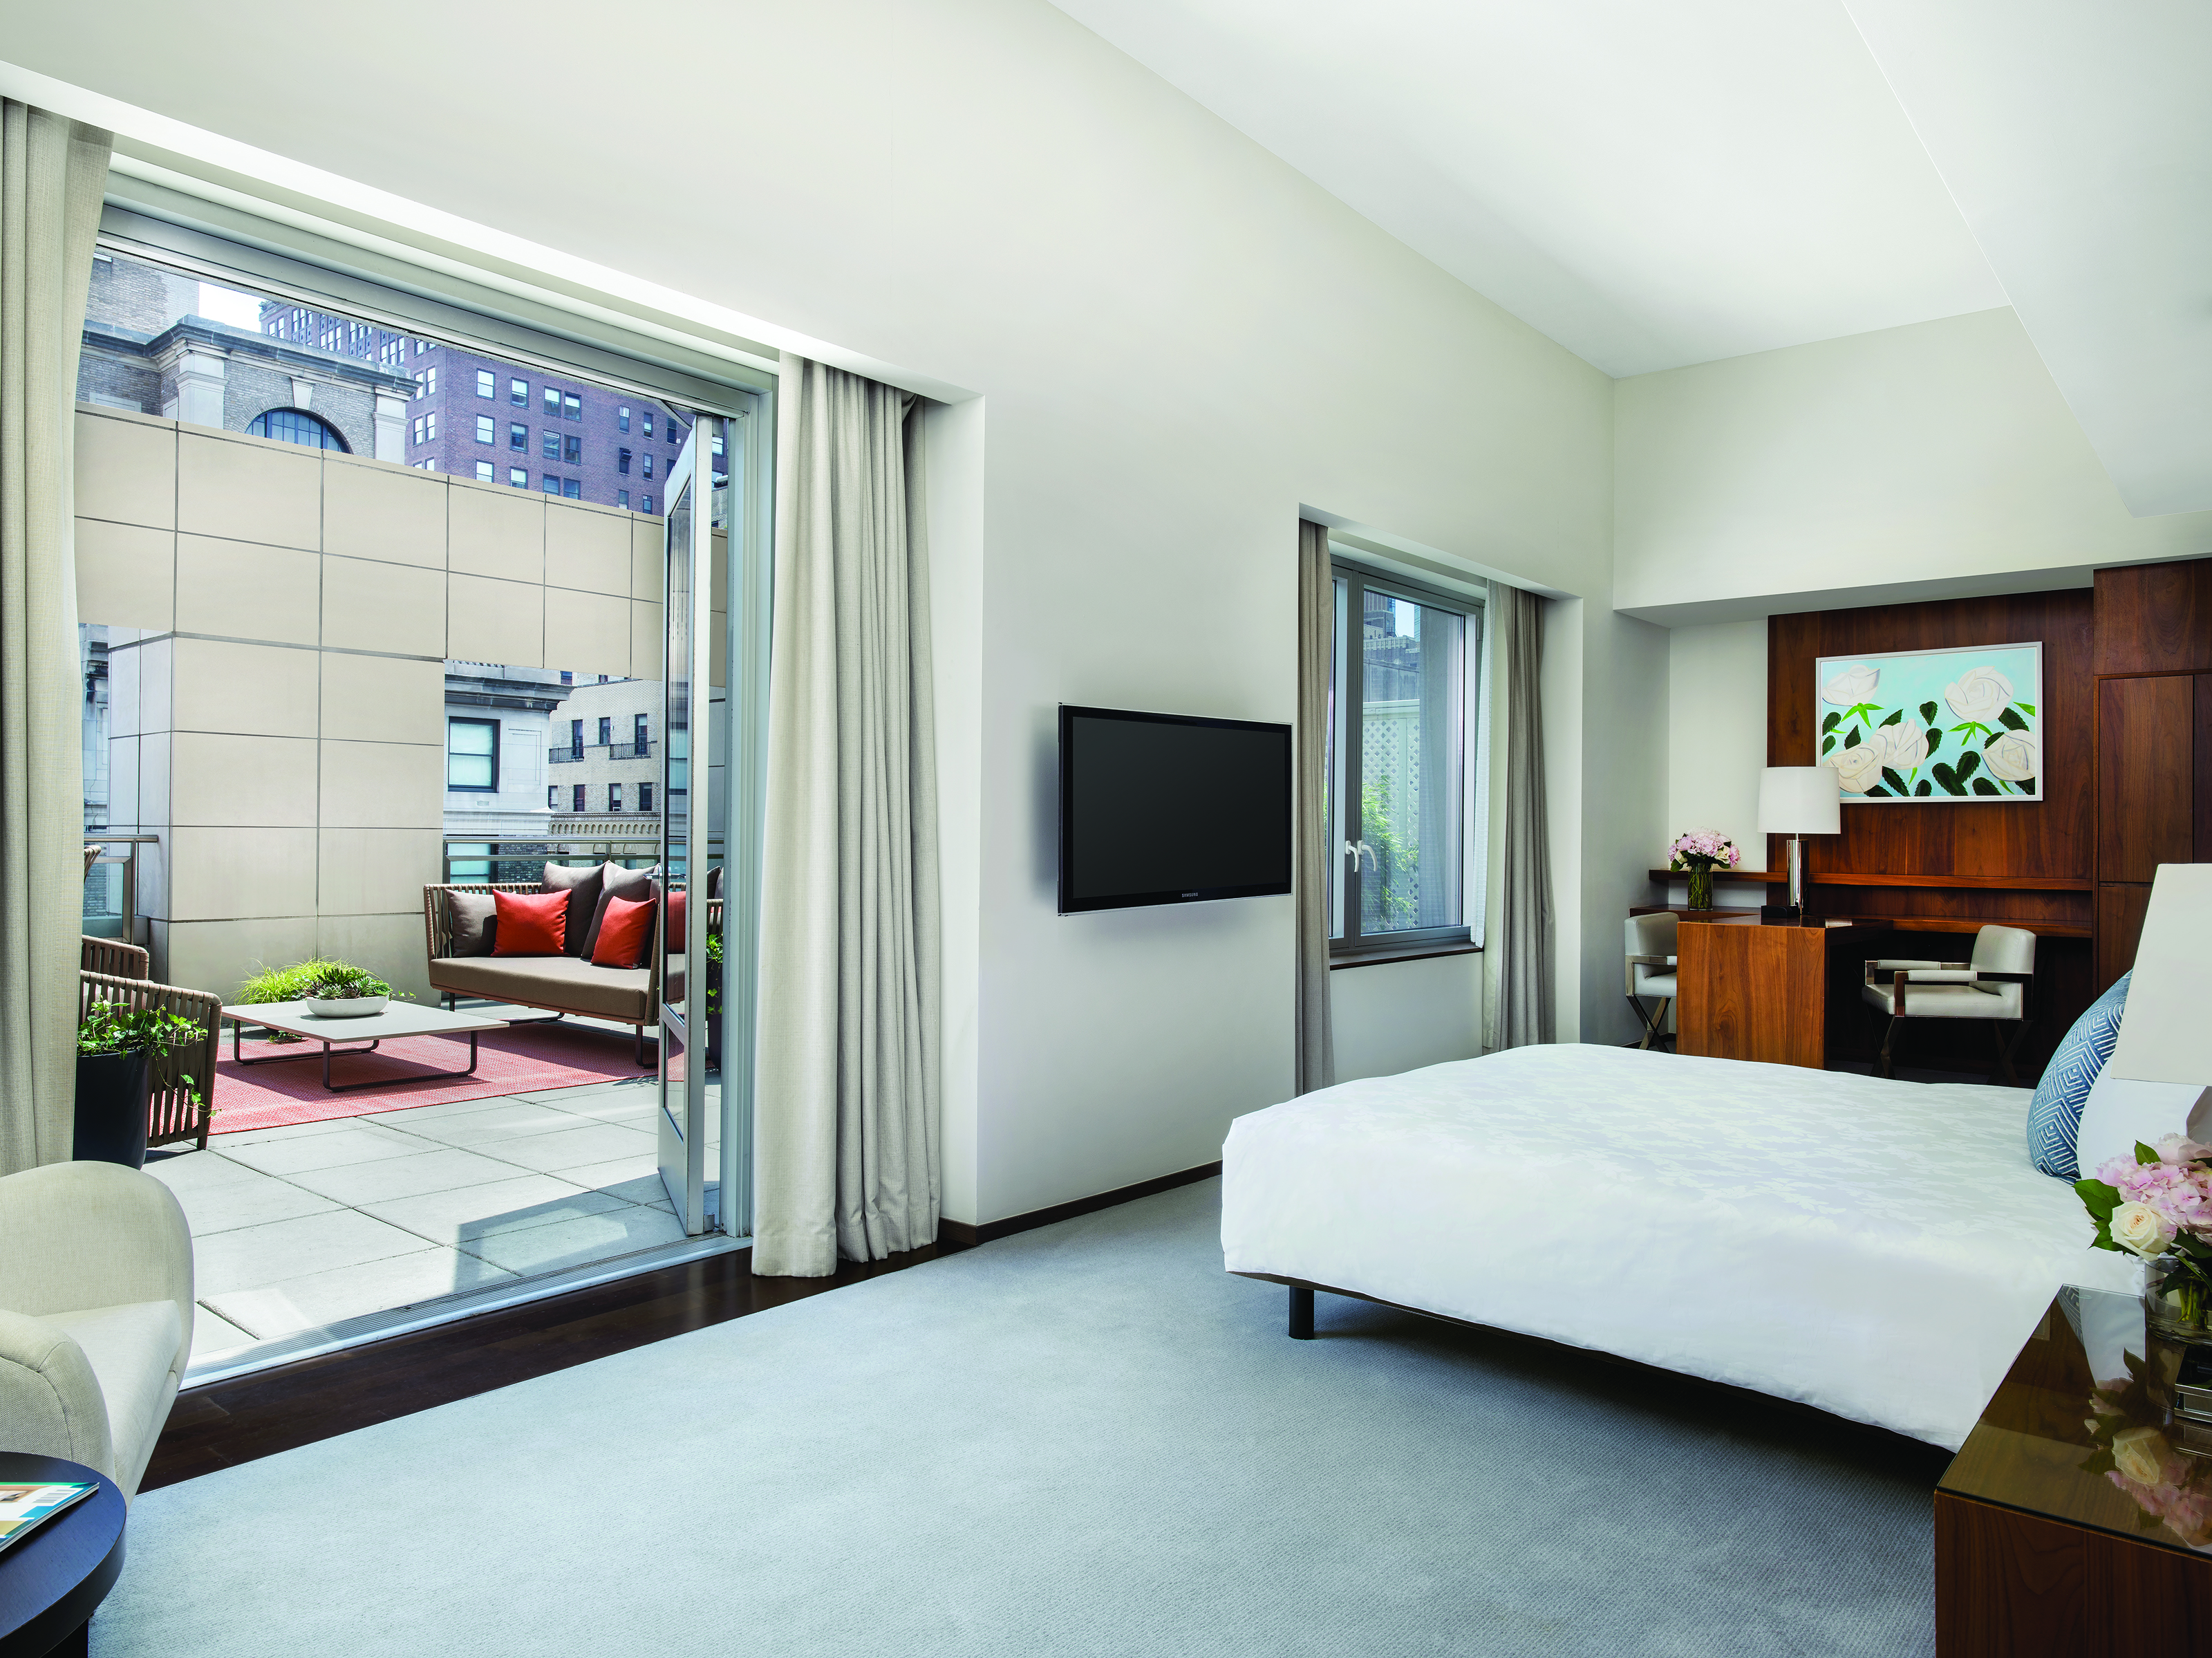 The terraces are sold as an upgrade to each of the rooms to which they are affixed.